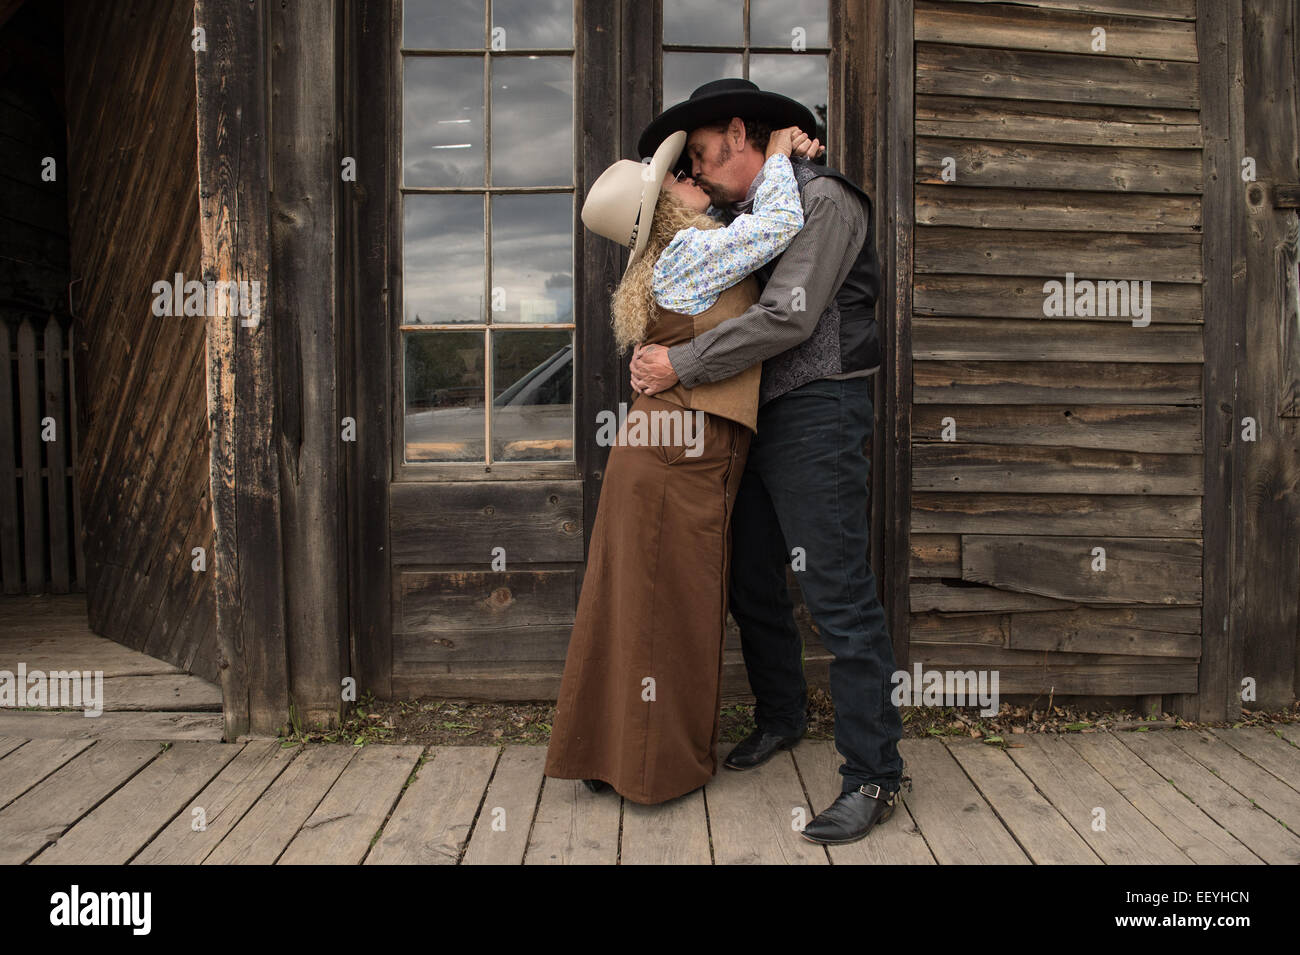 """Anthony """"Curly Two Guns"""" Pratt and his wife Judy """"Curly Montana"""" Amesbury take a break from minding their Virginia - Stock Image"""